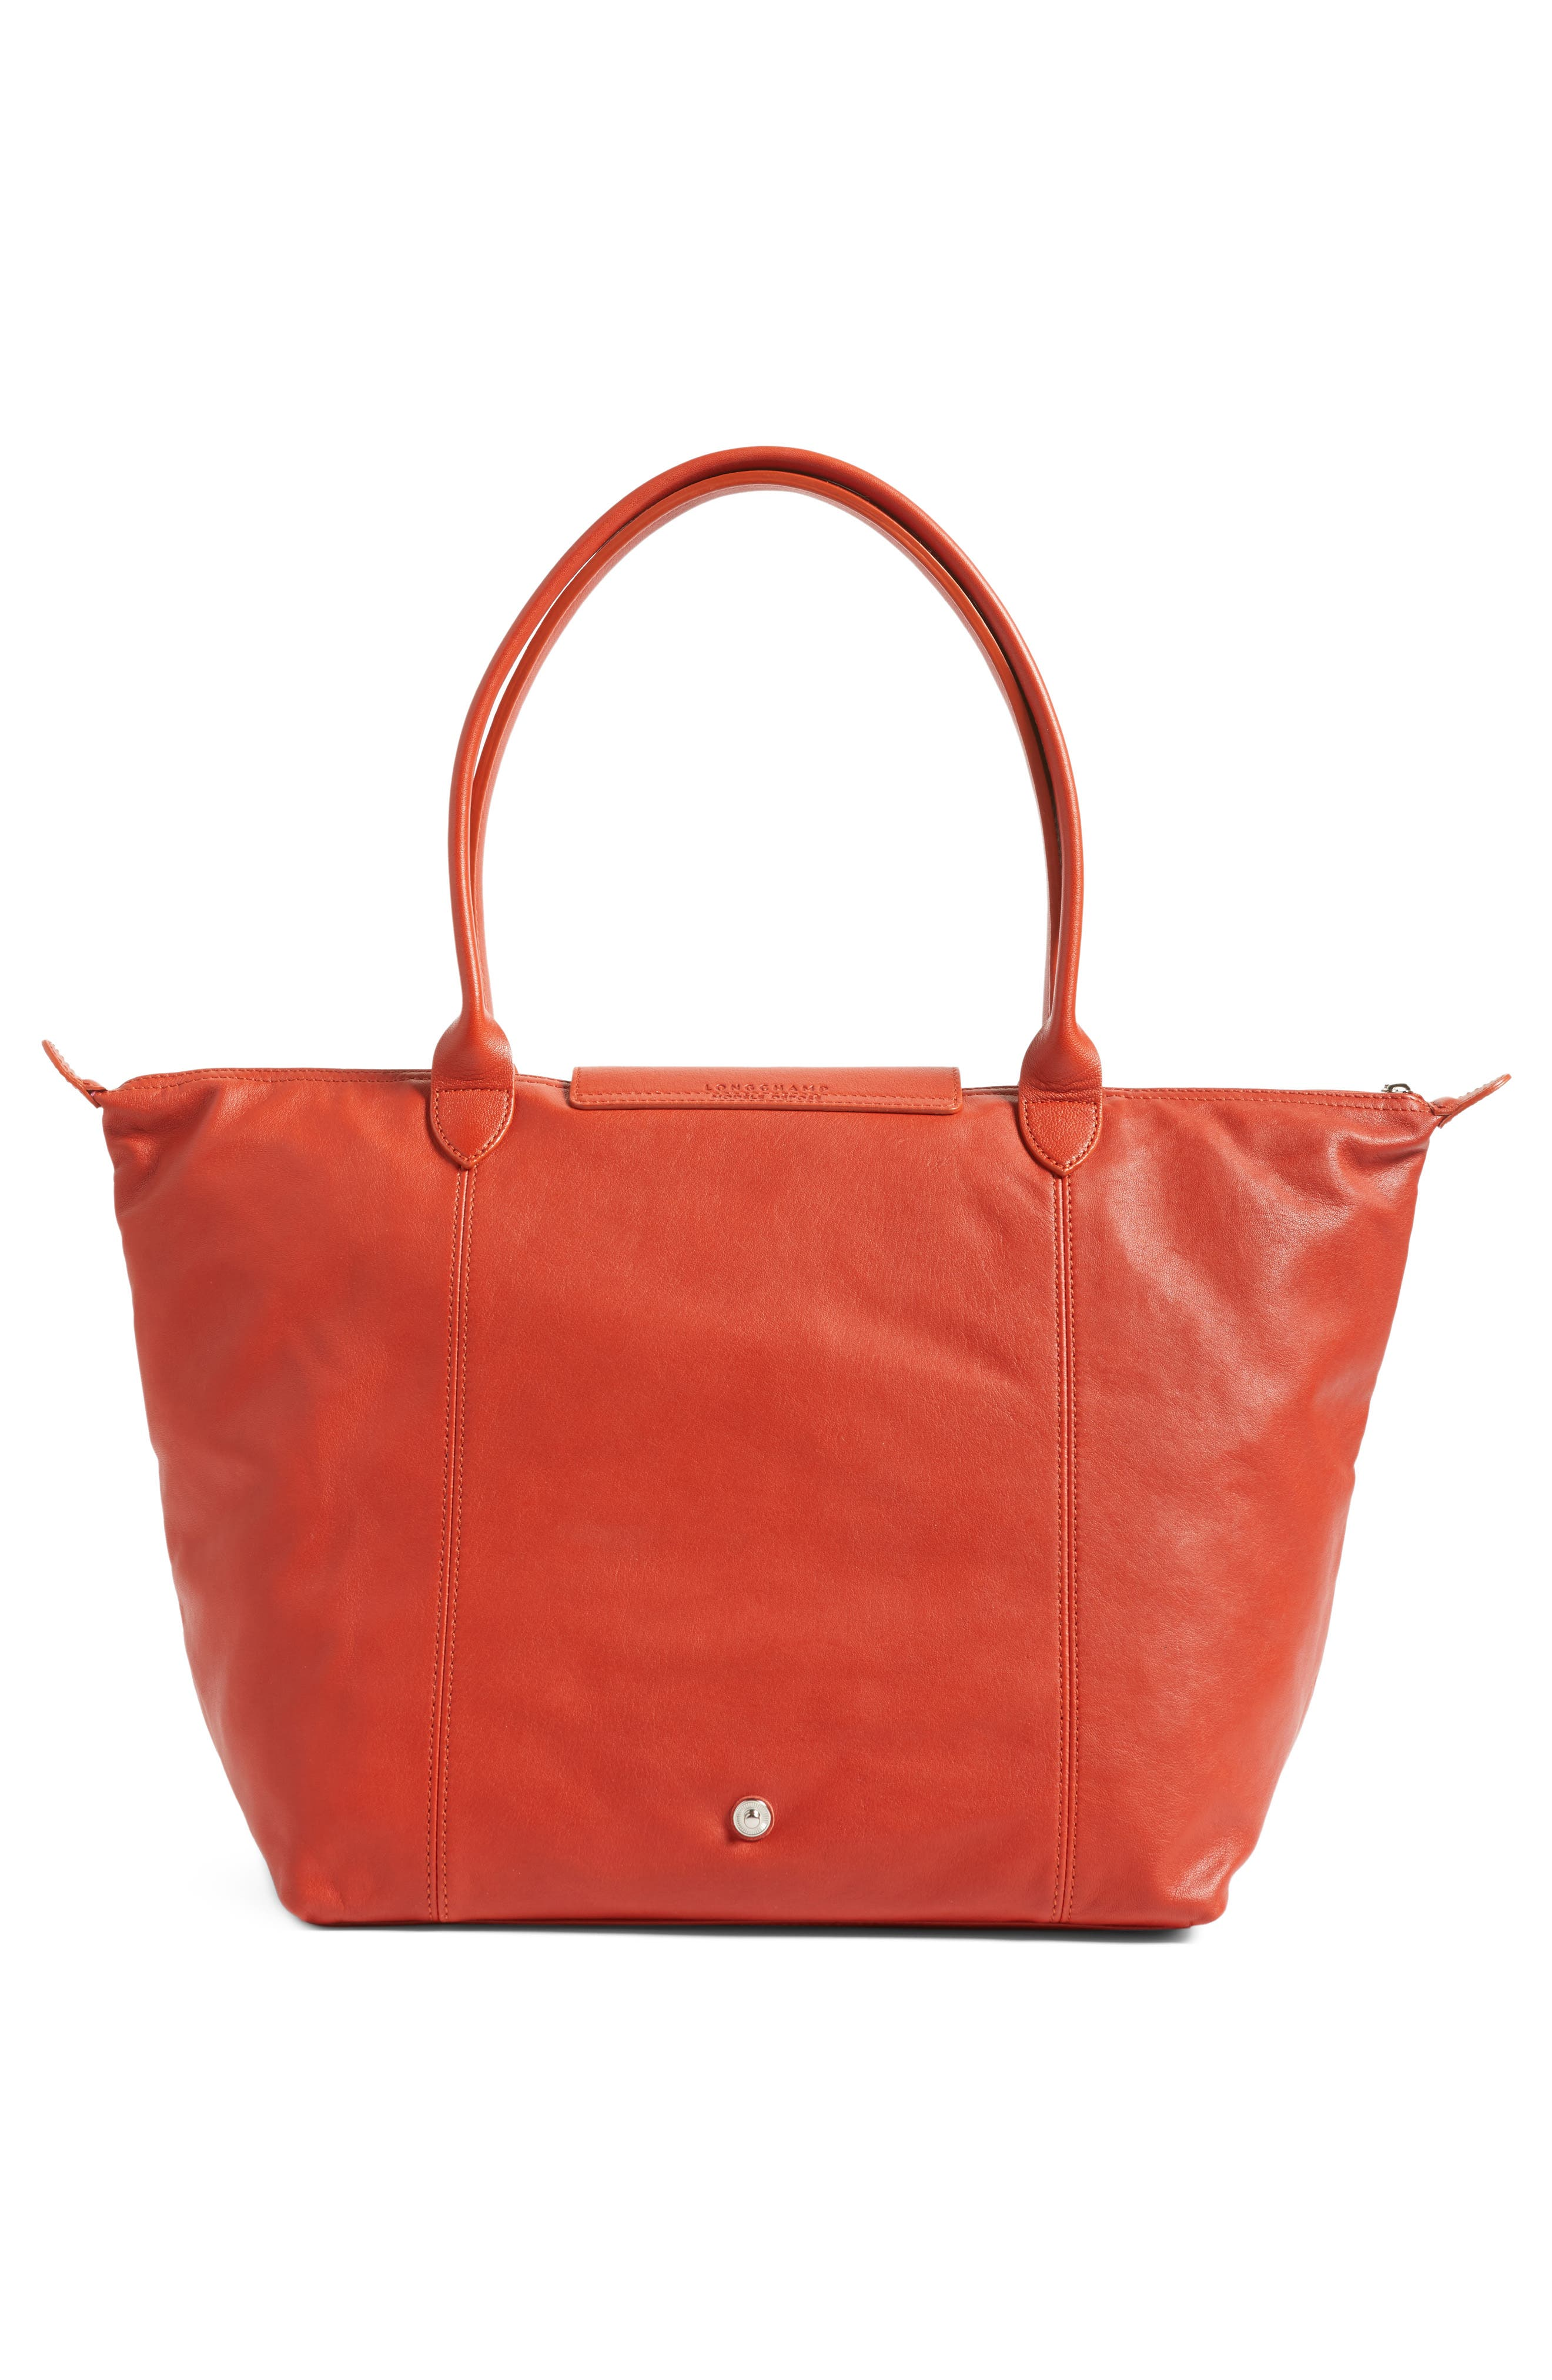 Alternate Image 3  - Longchamp Le Pliage Cuir Leather Tote (Nordstrom Exclusive)